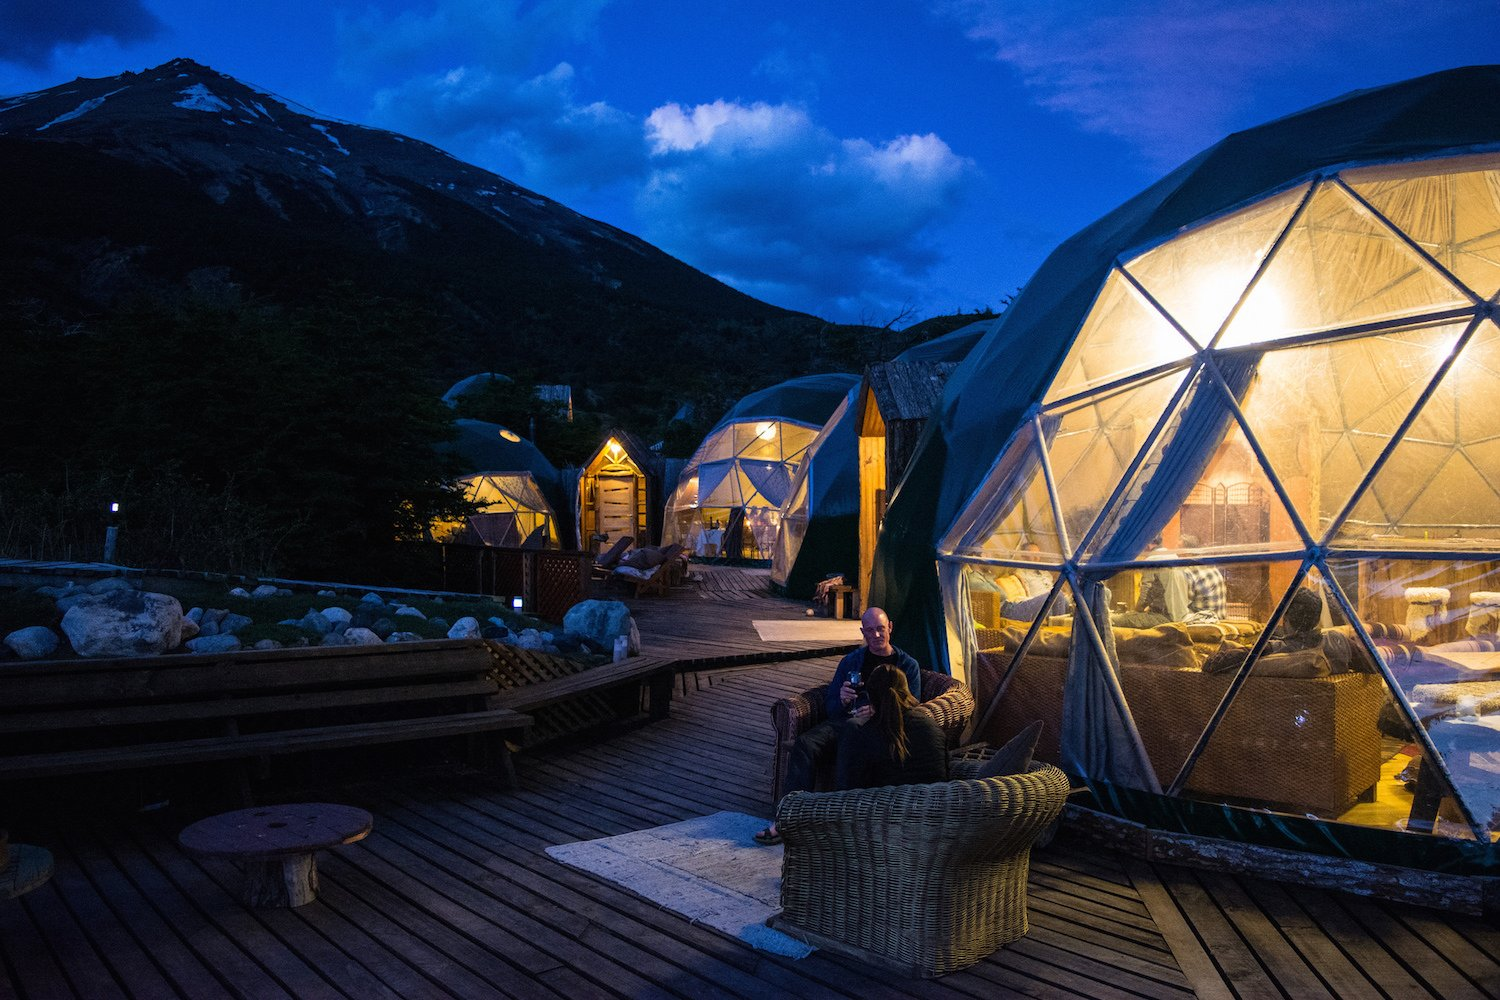 Outdoor, Decking, Hardscapes, Large, Wood, Shrubs, Walkways, Boulders, Trees, Field, Woodland, and Slope  Best Outdoor Field Hardscapes Photos from Soak Up the Magic of Patagonia at This Eco-Friendly Geodesic Dome Retreat